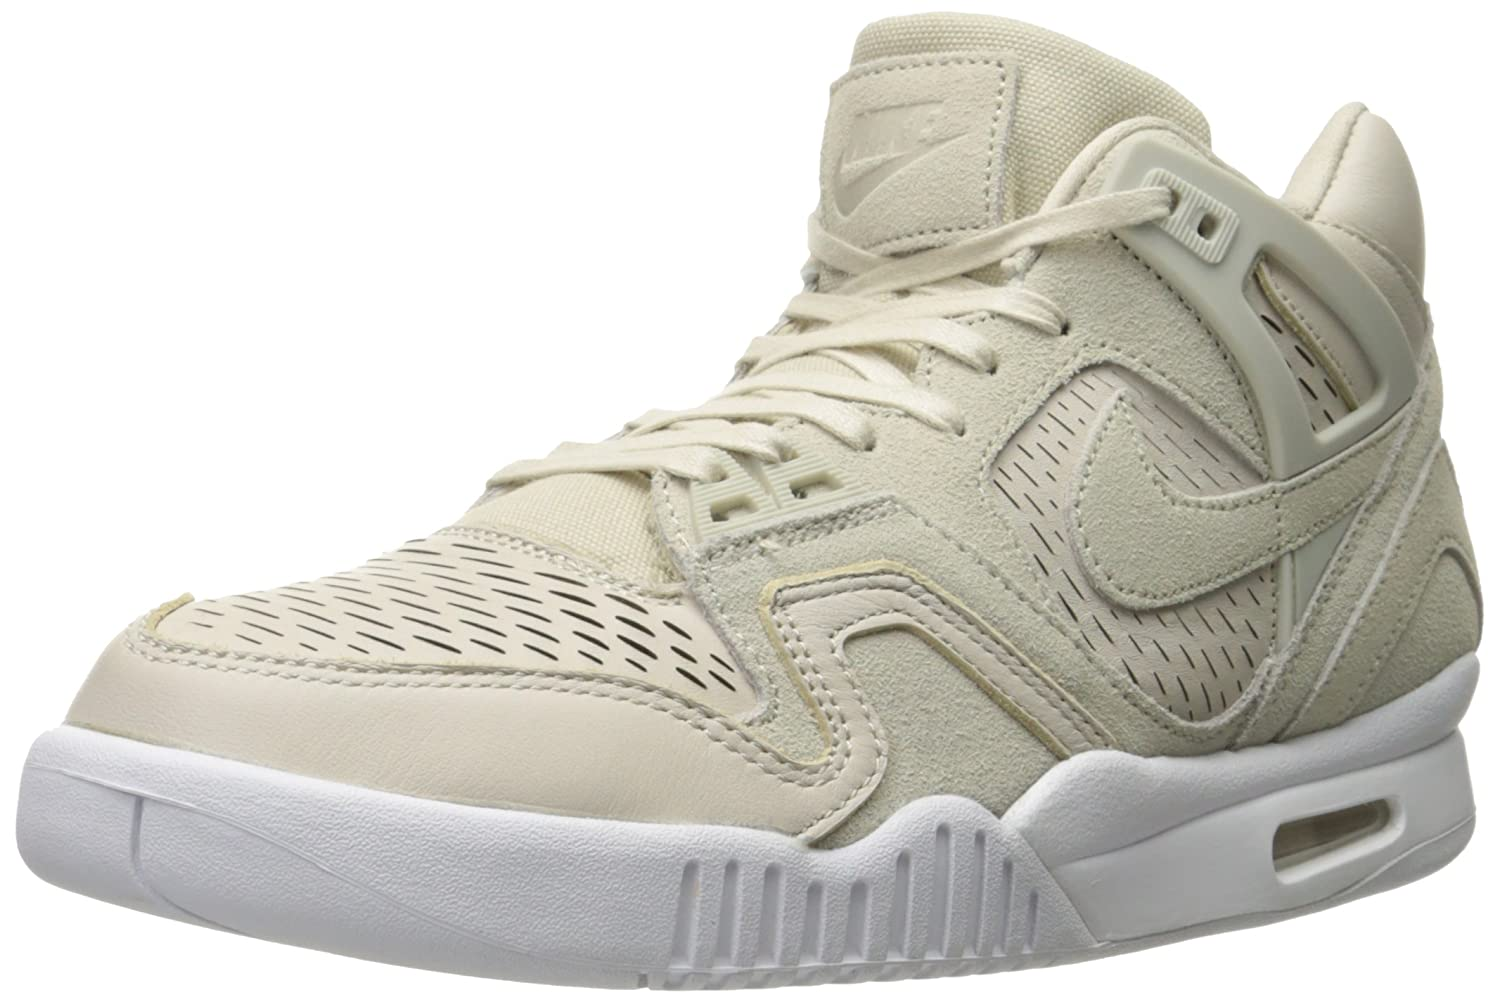 NIKE Men's Air Tech Challenge II Laser Tennis Shoe Birch/Birch/White